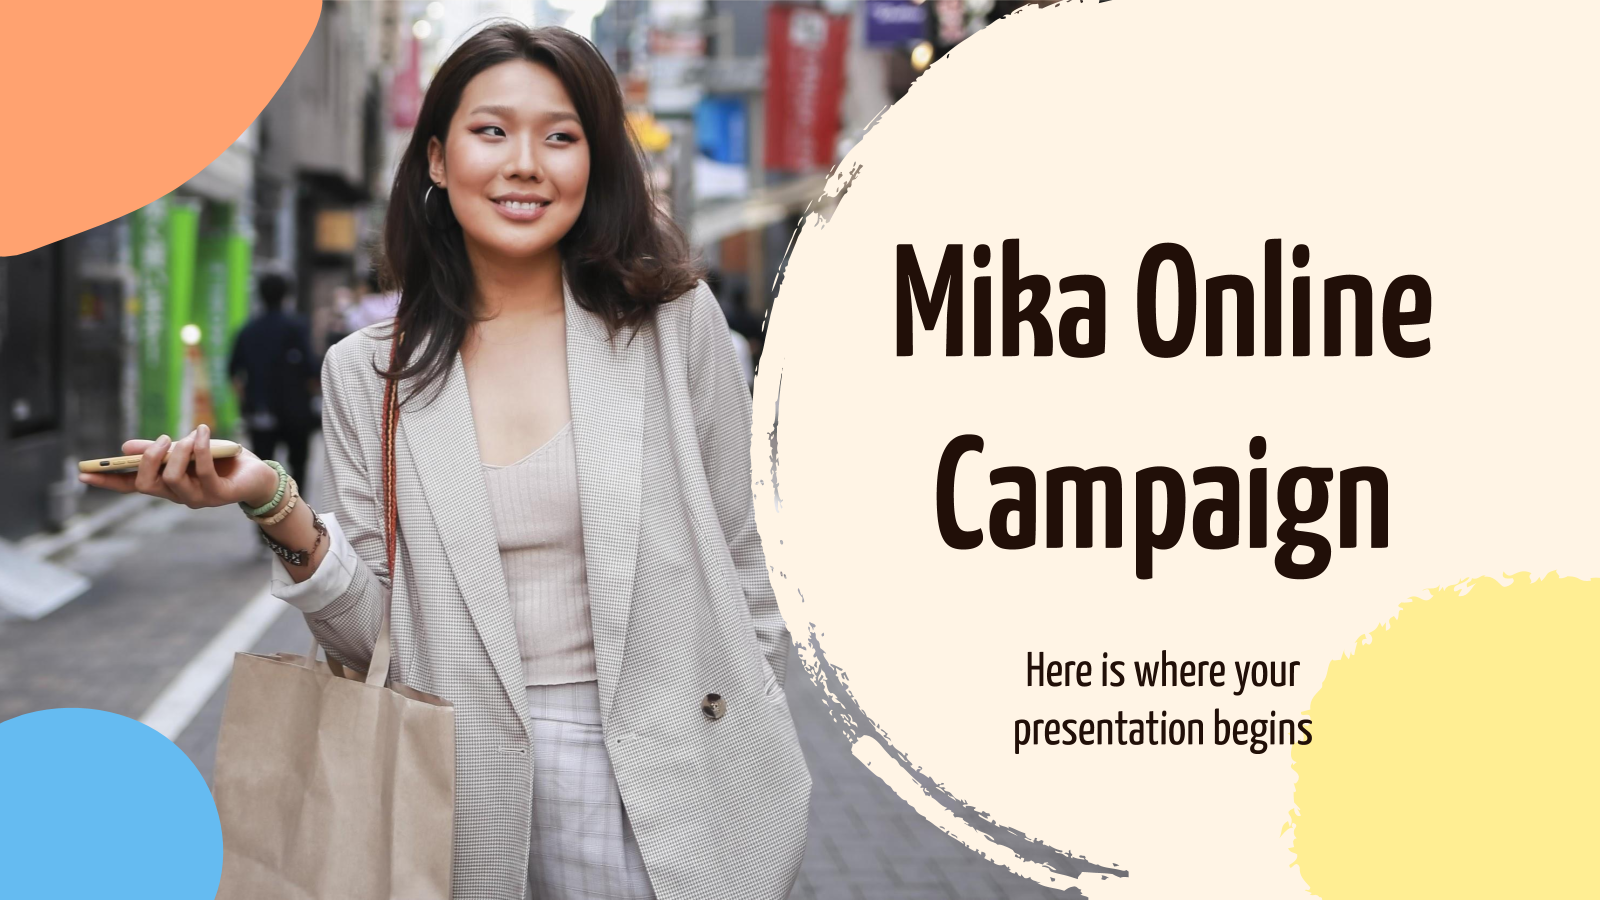 Mika Online Campaign presentation template